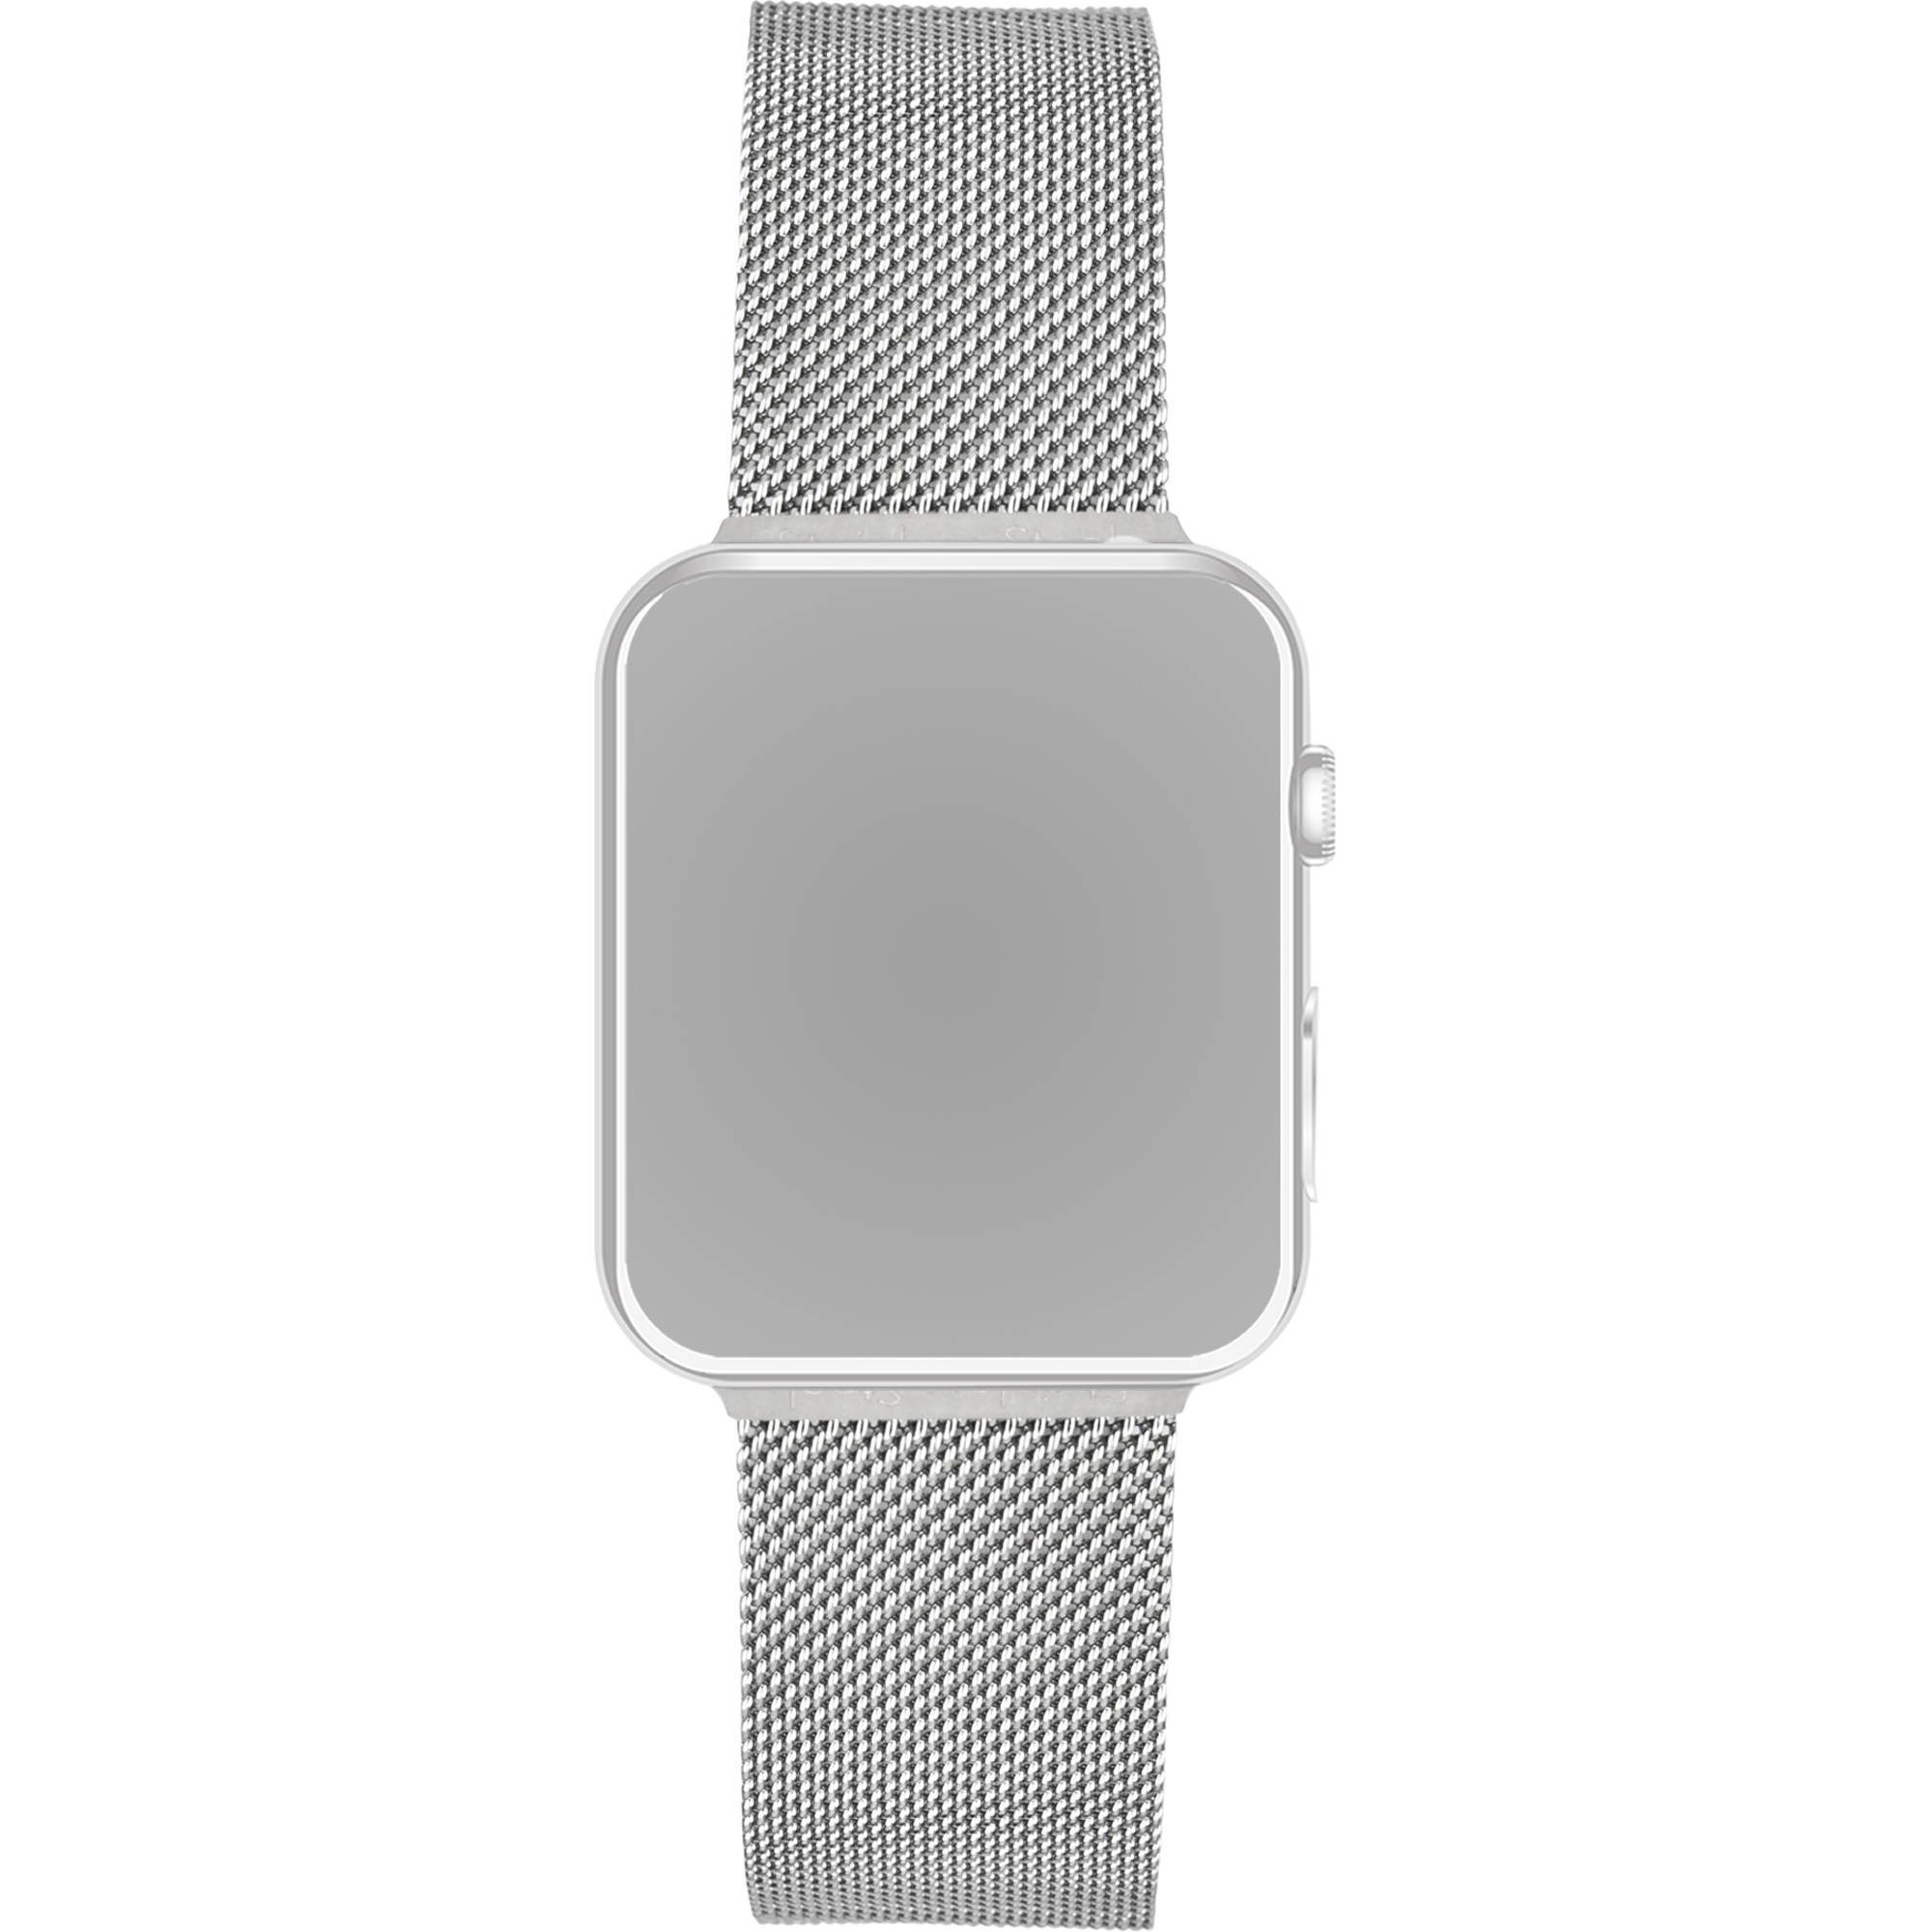 grey comments aluminum applewatch milanese space decent on the loop looks quite silver watches actually r